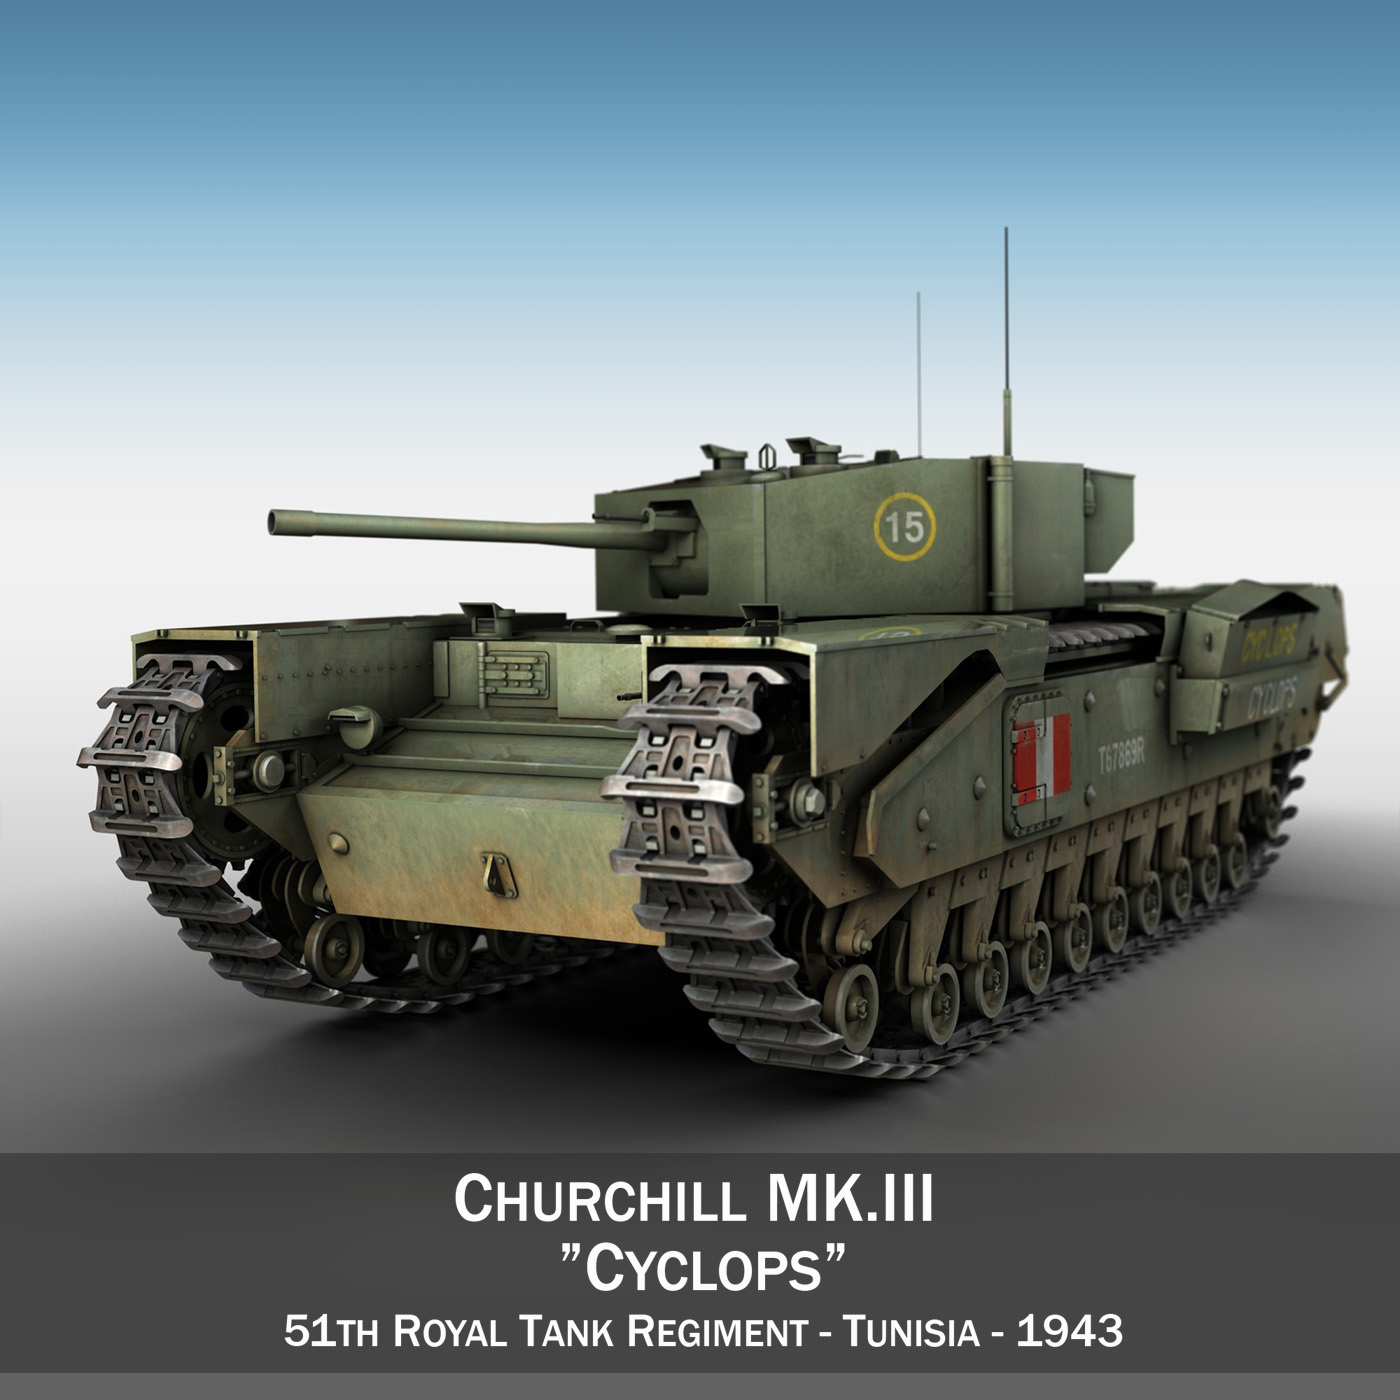 churchill mk.iii - cyclops 3d model 3ds fbx c4d lwo obj 270897